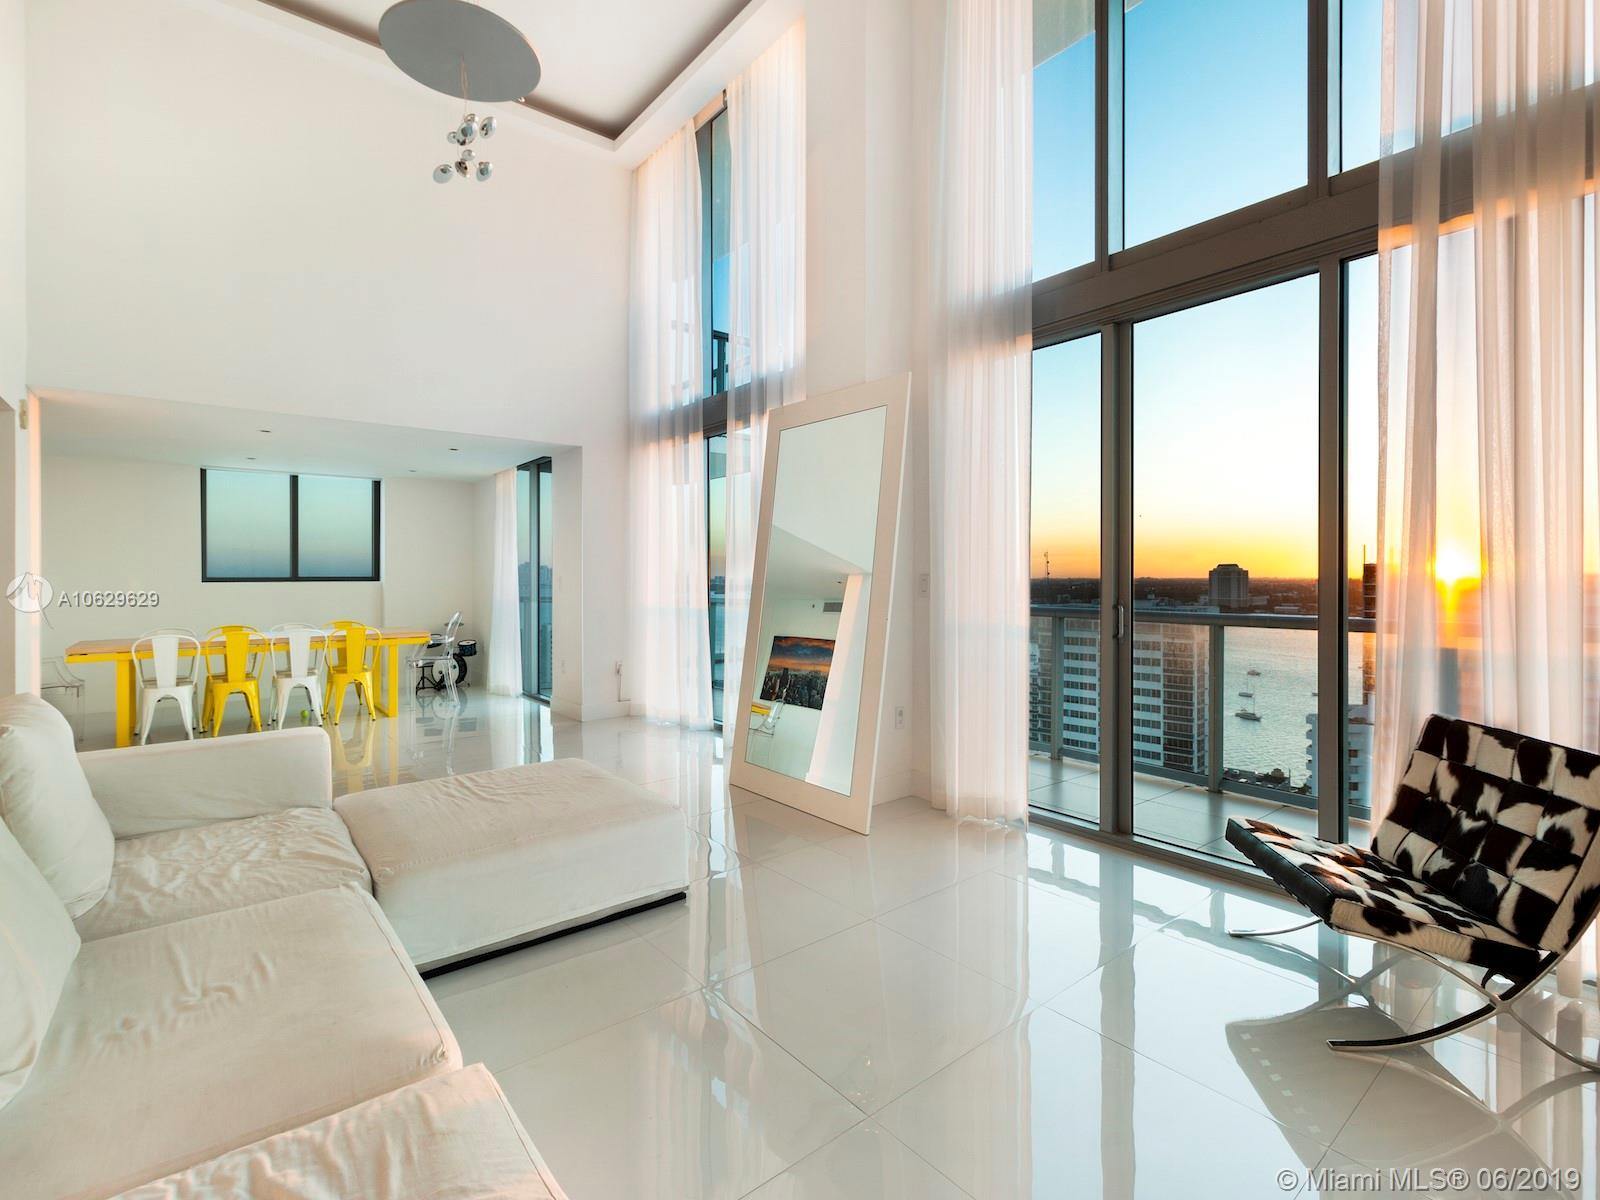 Superb Penthouse in the heart of Miami with stunning and unobstructed views of the ocean, intracoast